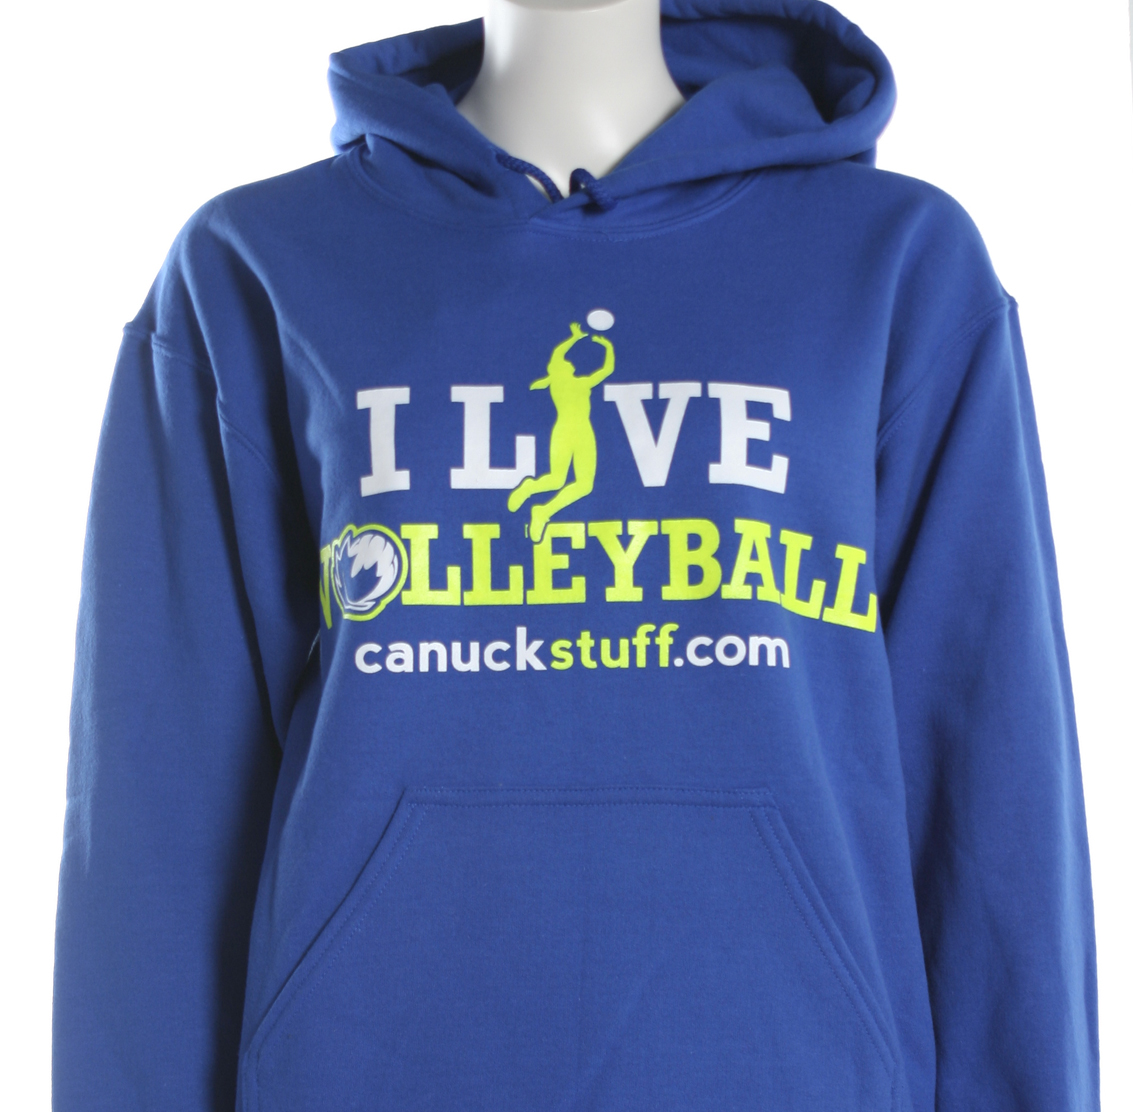 I Live Volleyball Hoodie